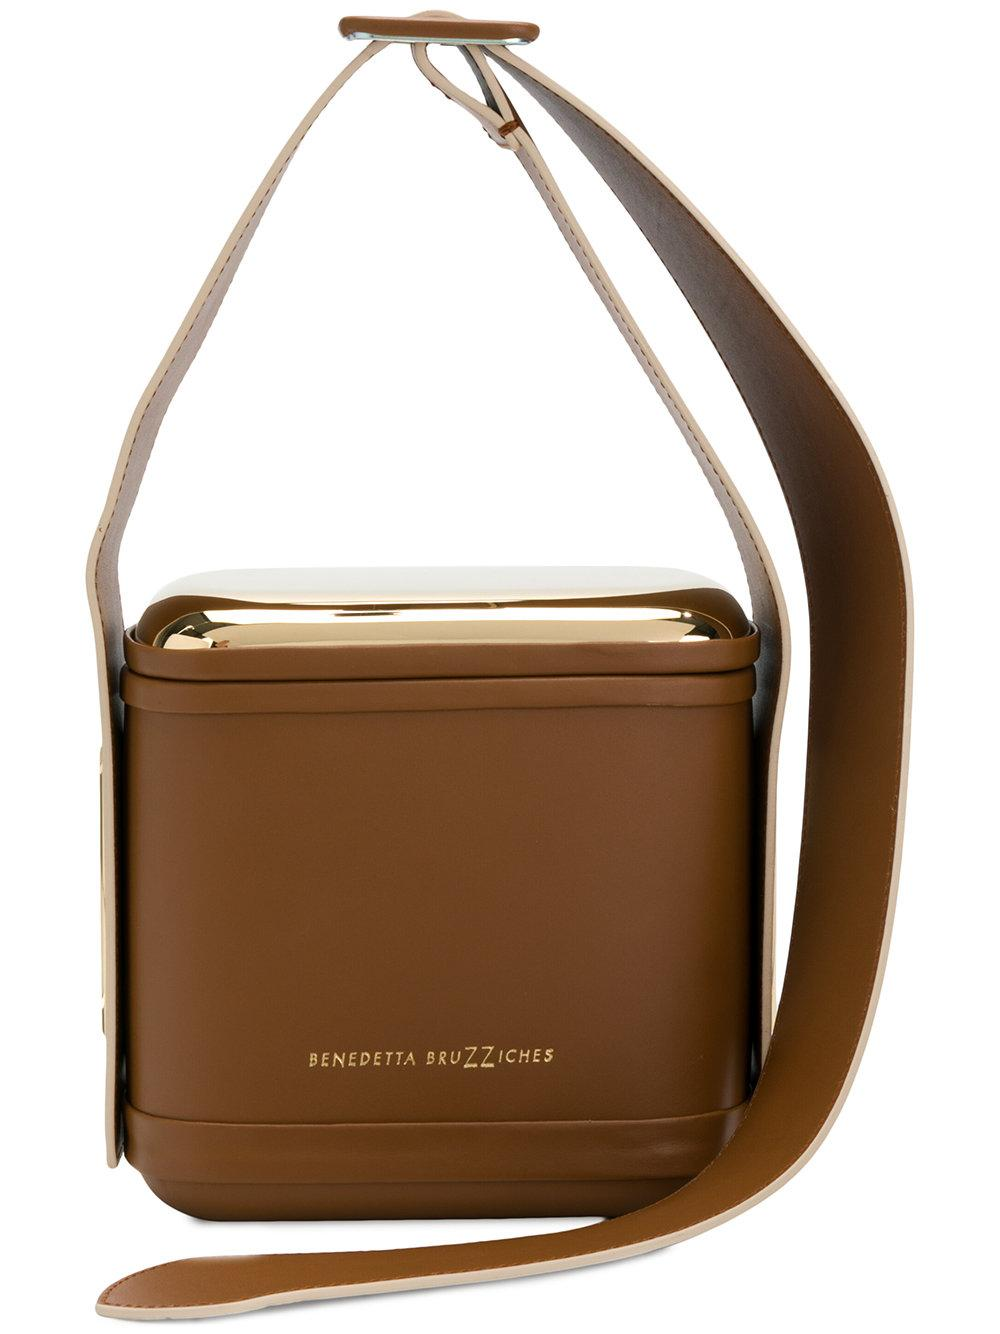 Benedetta Bruzziches Square Shoulder Bag